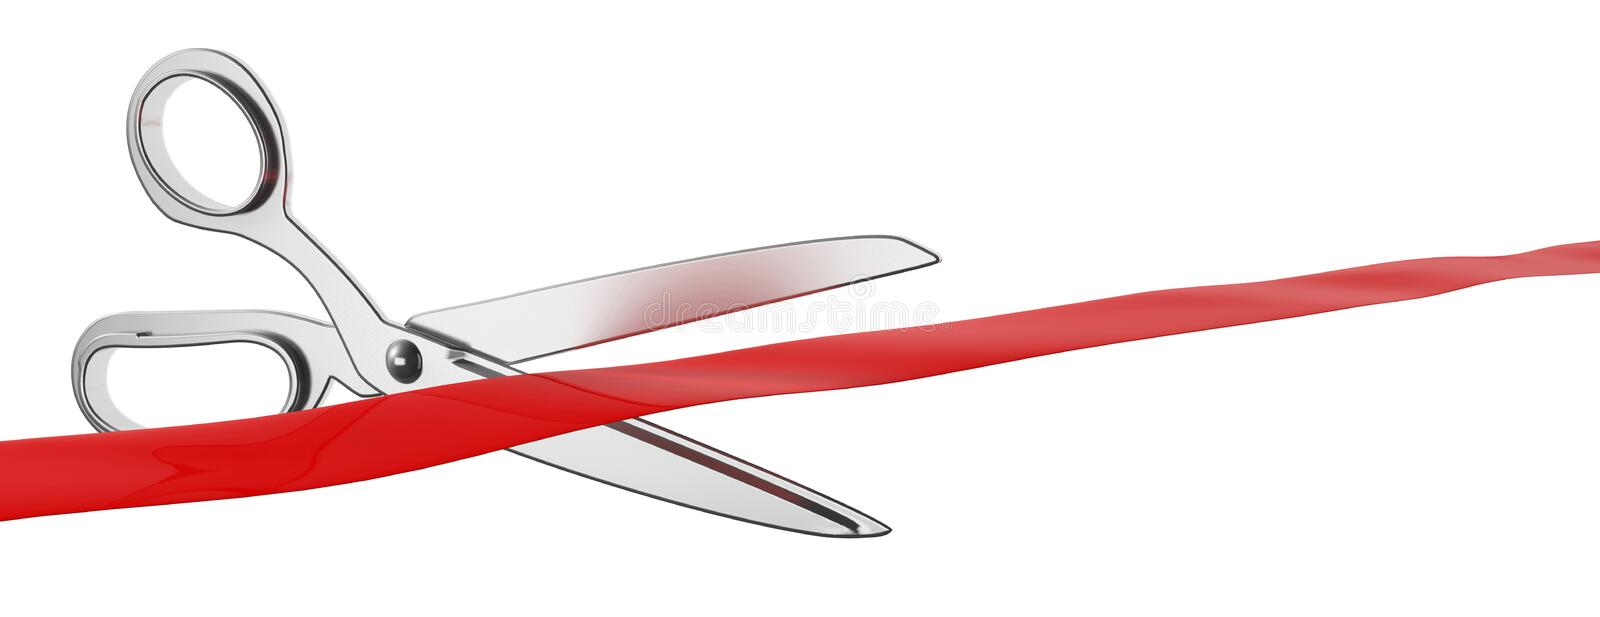 Scissors cutting red silk ribbon isolated cutout against white background, banner. 3d illustration. Grand opening concept. Scissors cutting red silk ribbon vector illustration